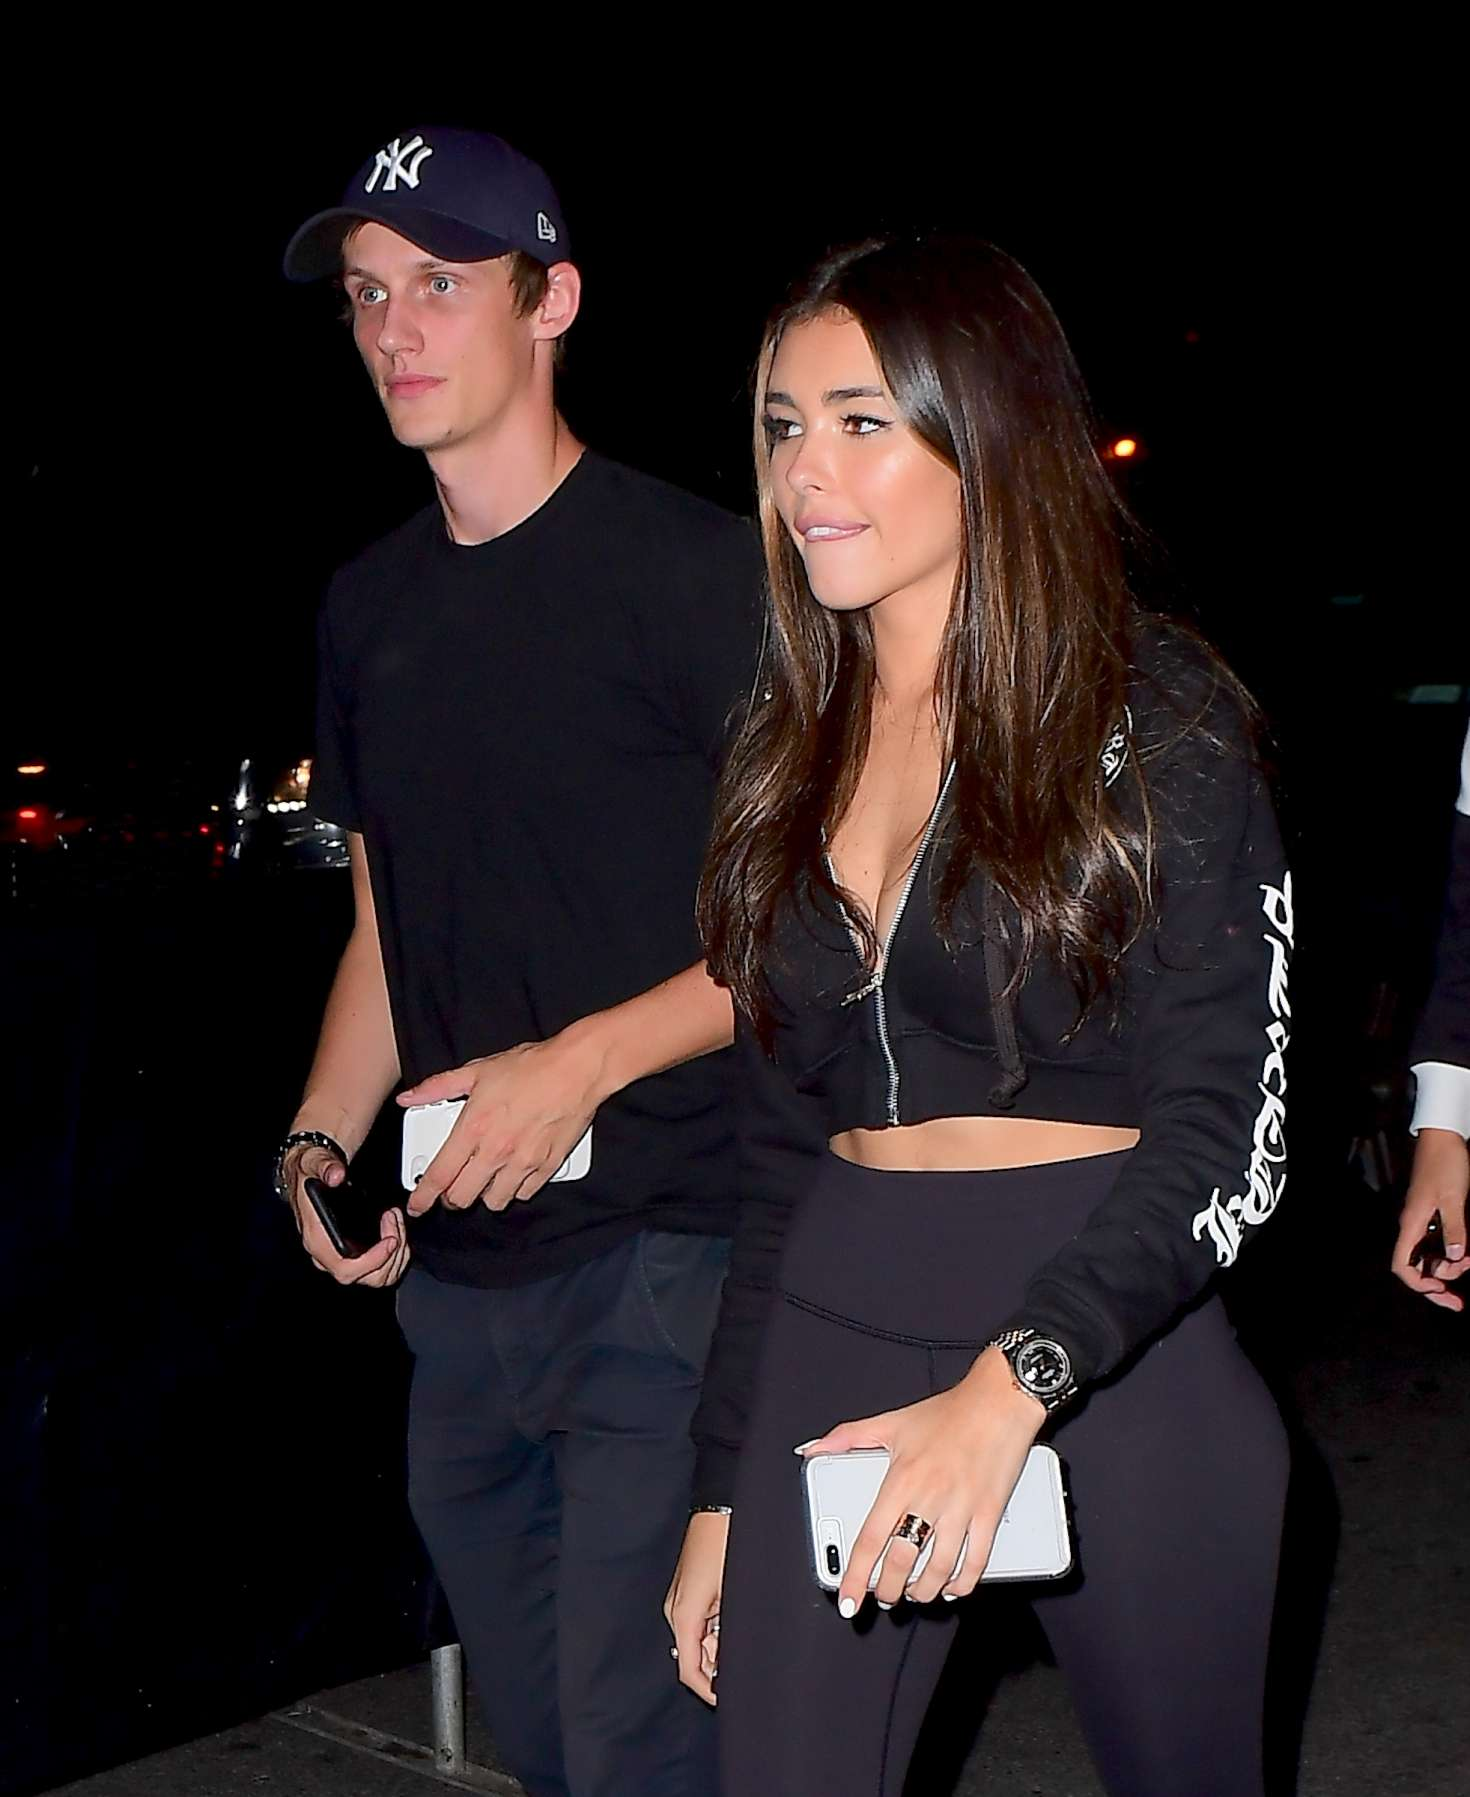 Madison Beer at Marquee Nightclub in NYC